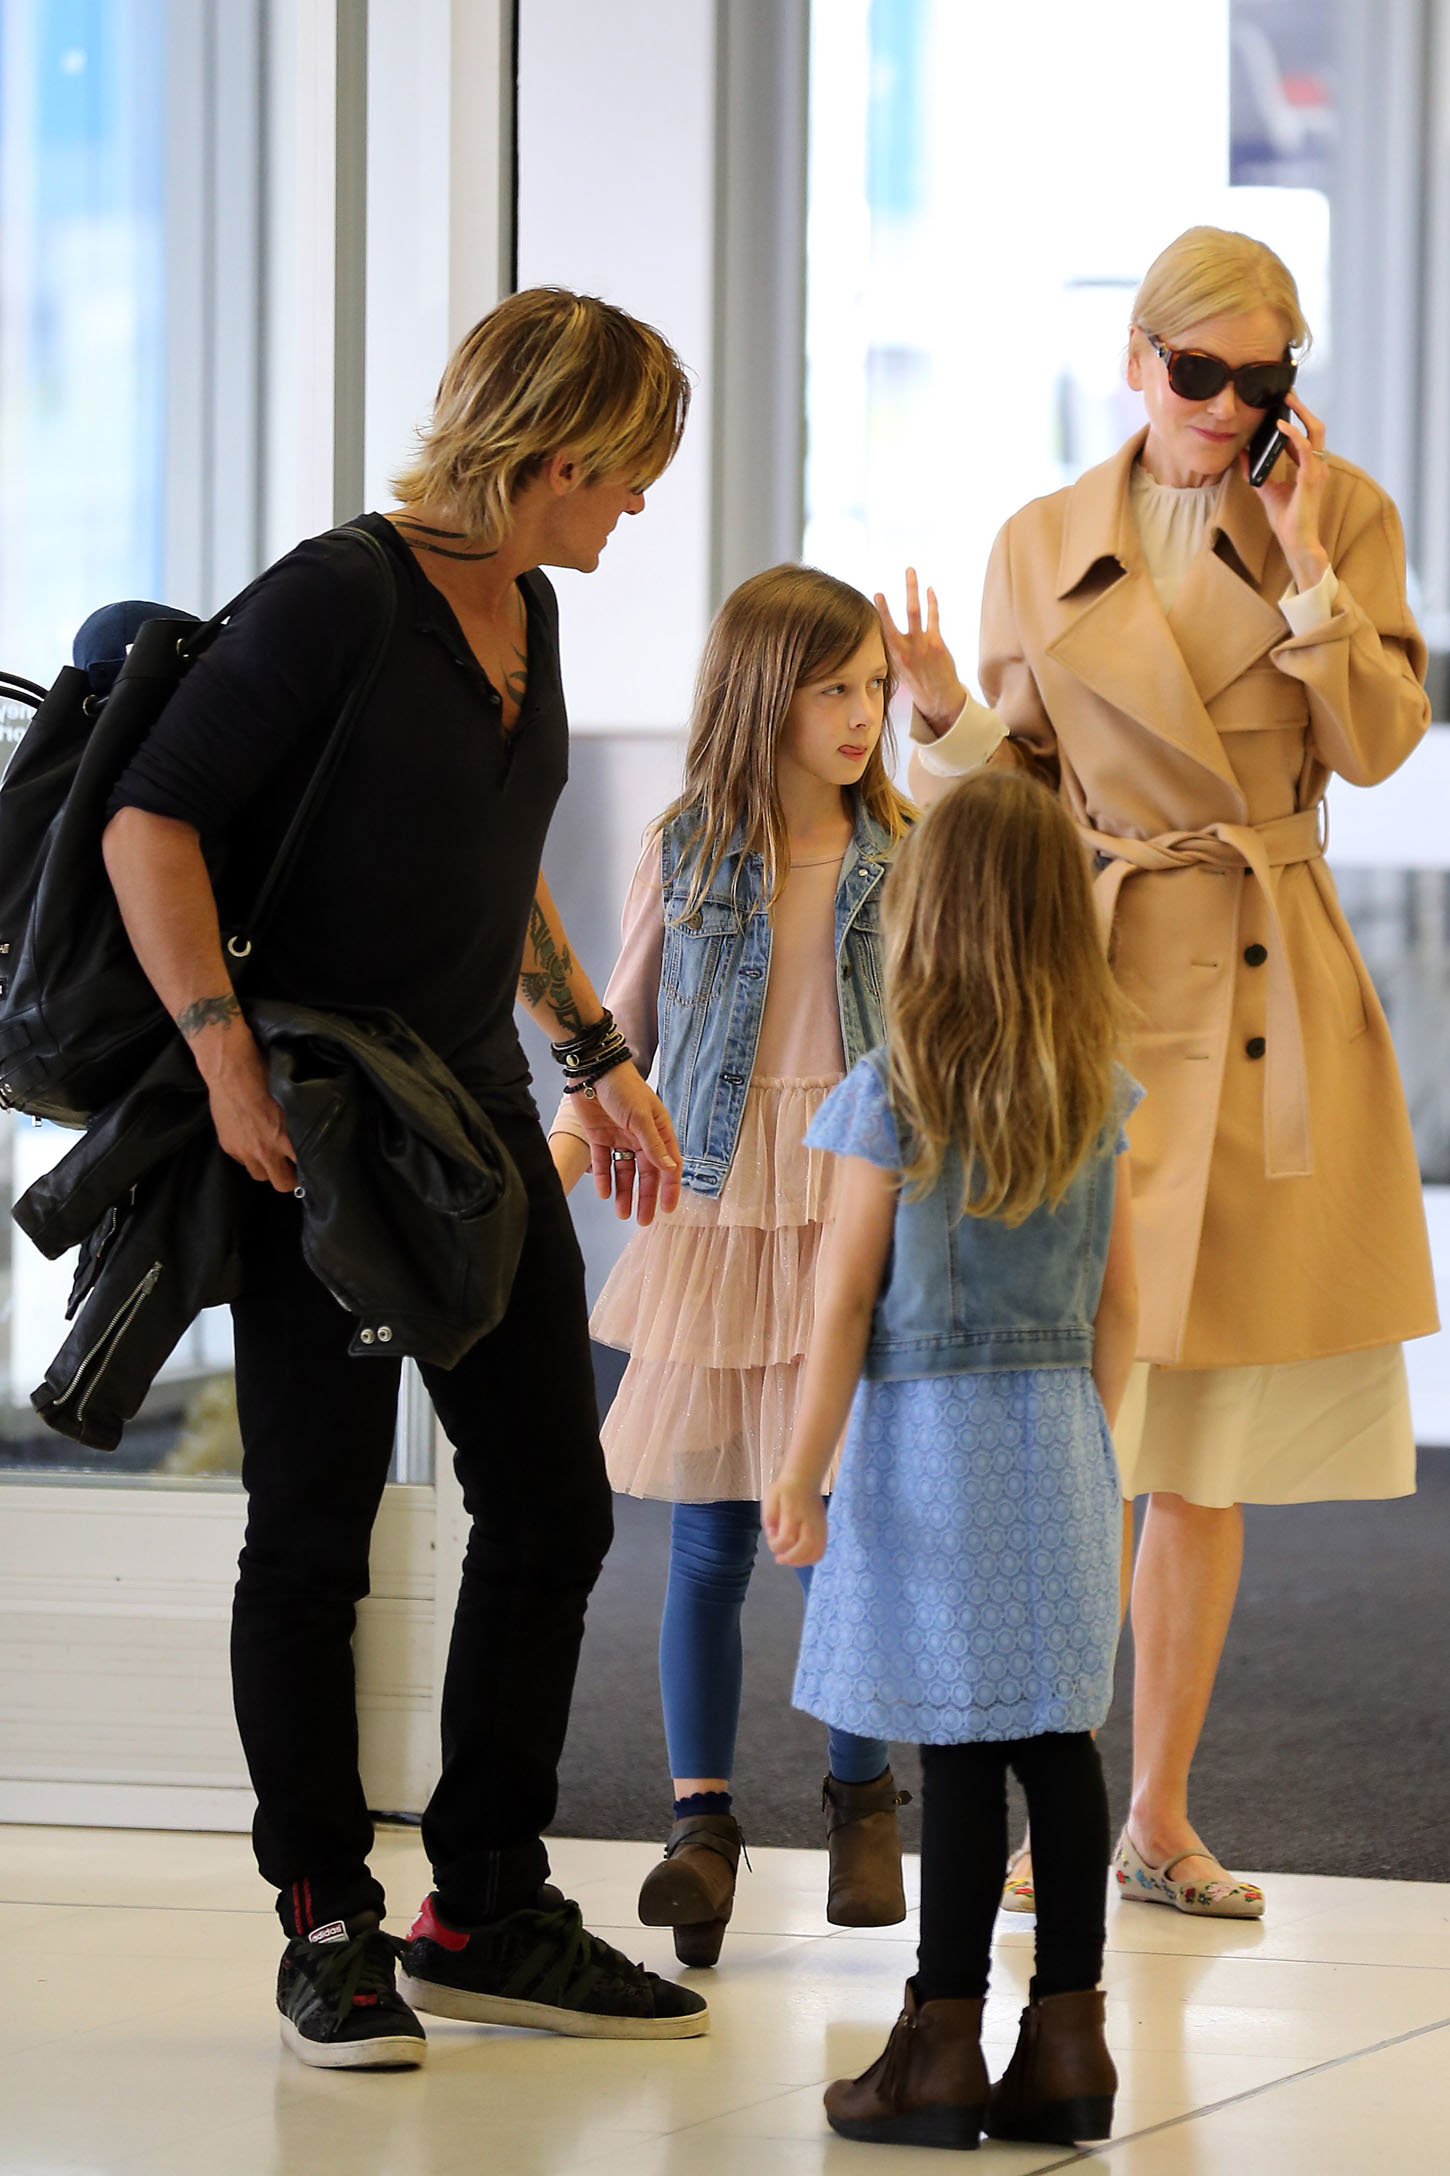 Sydney, NSW -3/28/2017 - Nicole Kidman and Keith Urban with Daughters at Sydney Airport  .PICTURED: Nicole Kidman, Keith Urban, Sunday Rose Kidman Urban, Faith Margaret Kidman Urban -, Image: 326768728, License: Rights-managed, Restrictions: , Model Release: no, Credit line: Profimedia, INSTAR Images